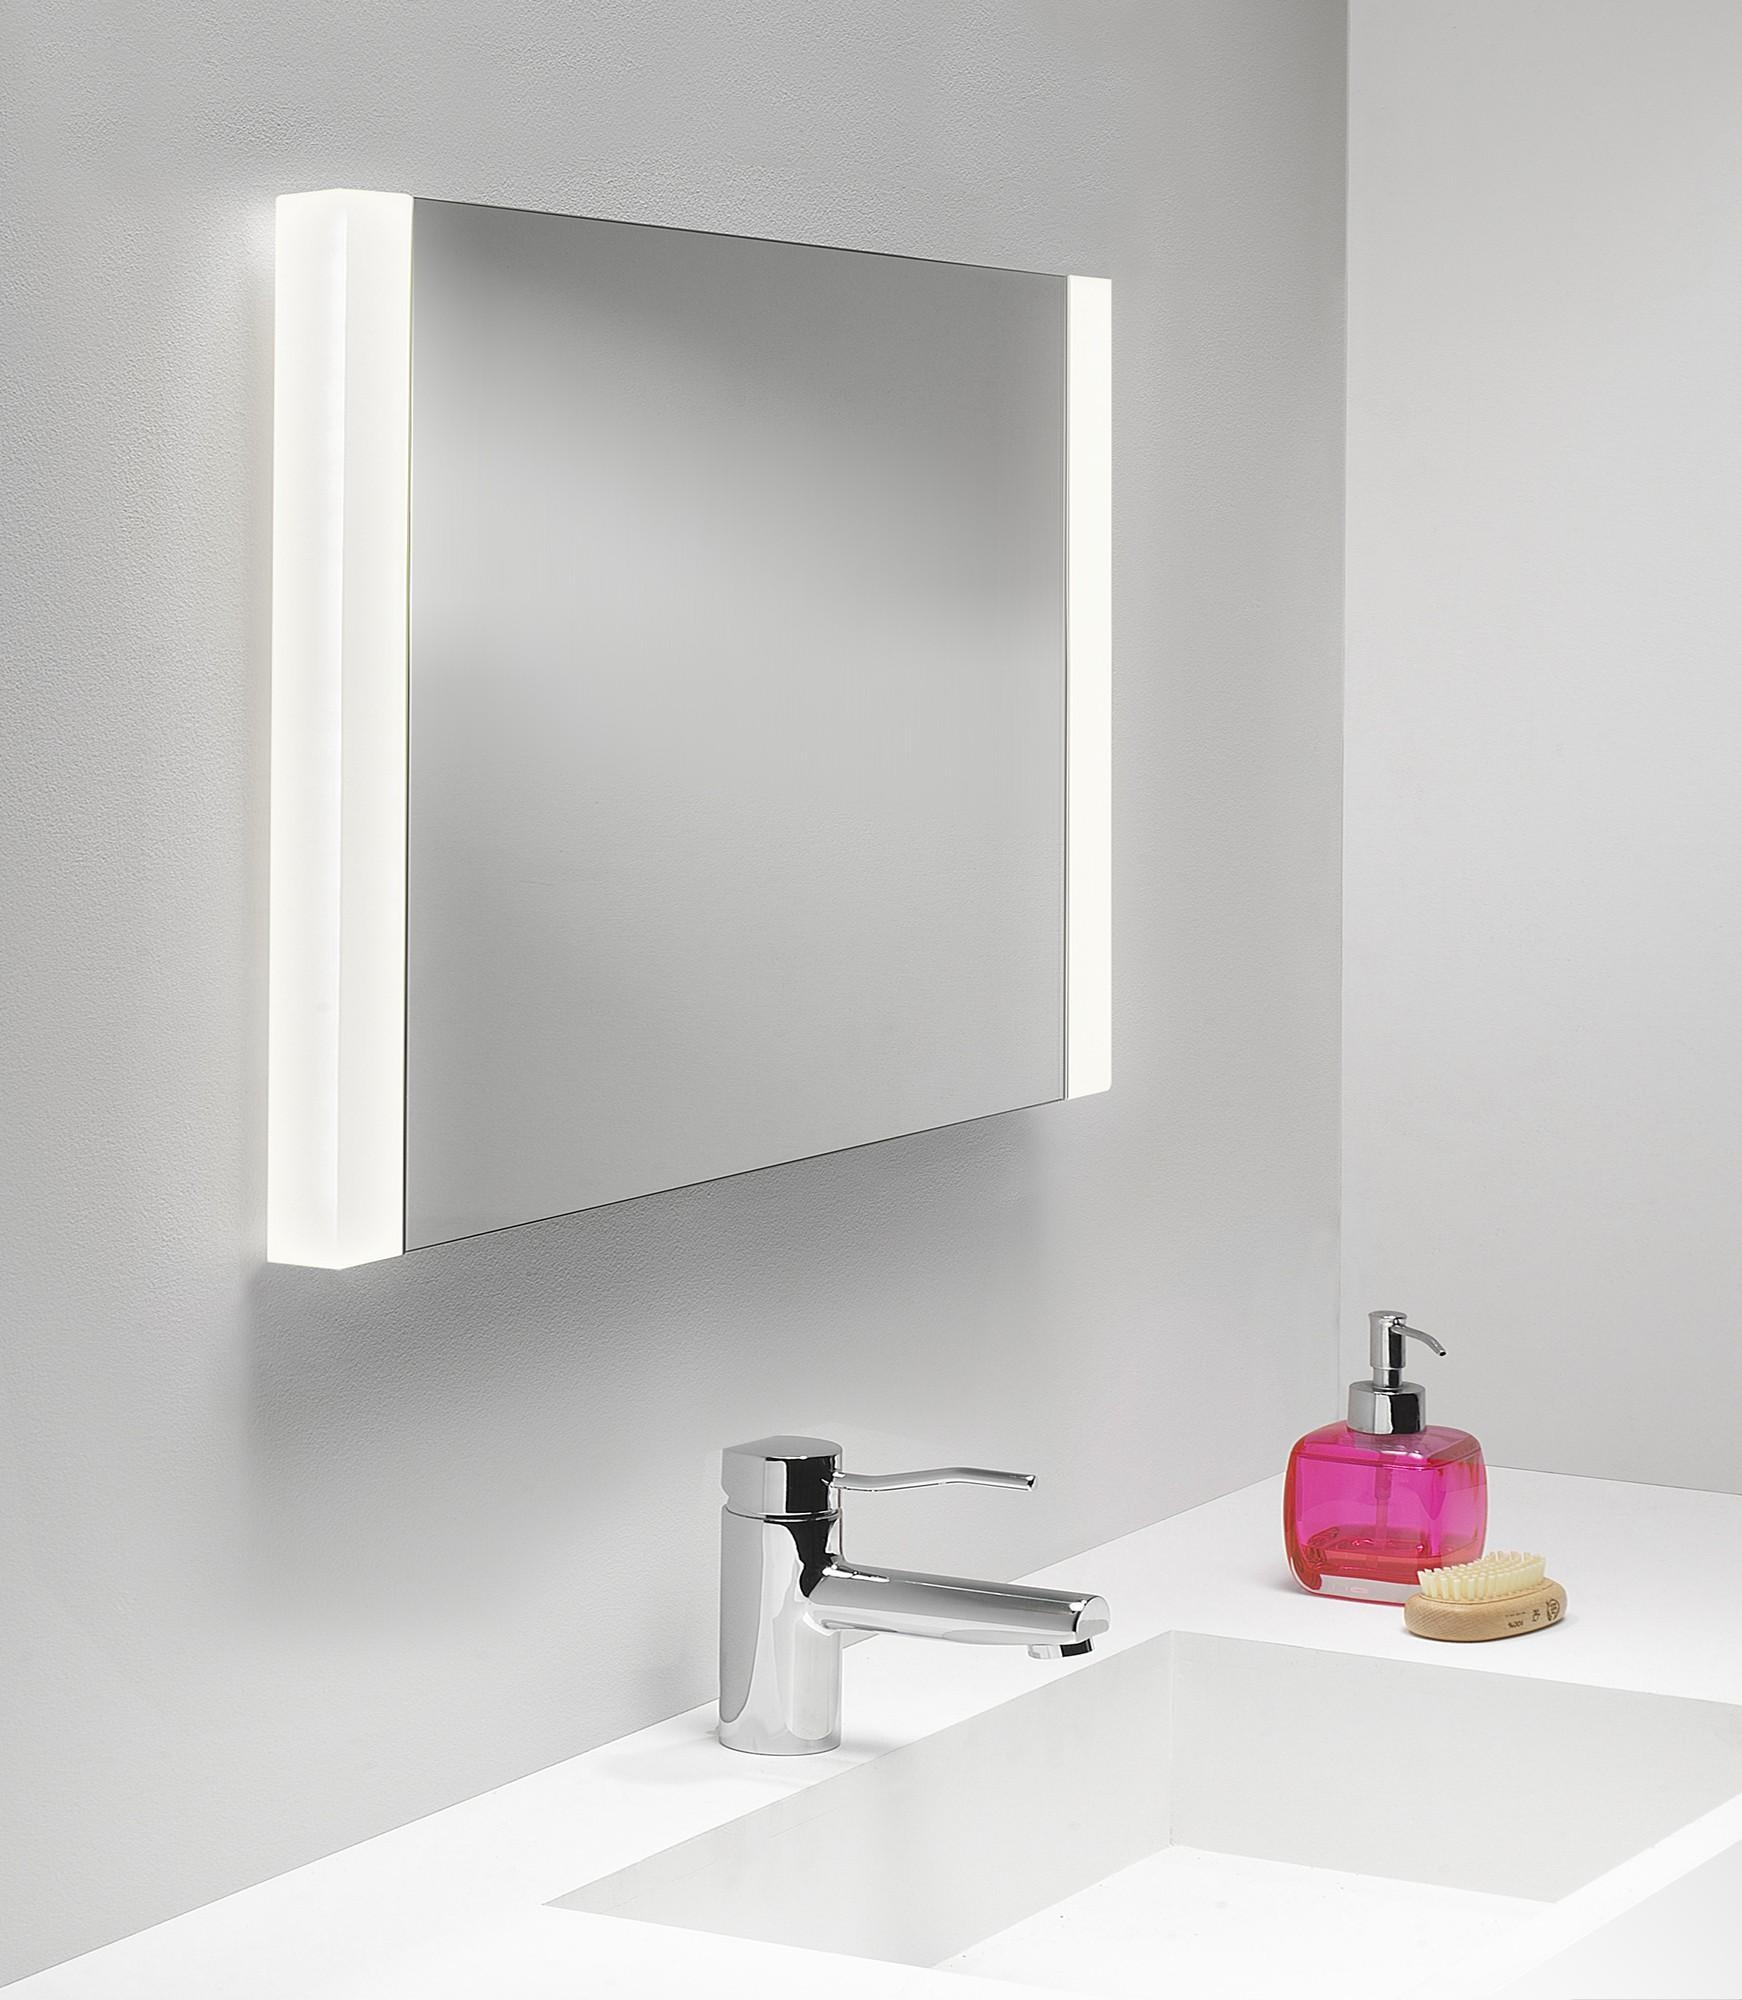 best mirrors for bathrooms top 20 bathroom mirrors lights mirror ideas 17342 | bathroom amusing white mirror design framed vanity with cabinets with regard to bathroom mirrors lights